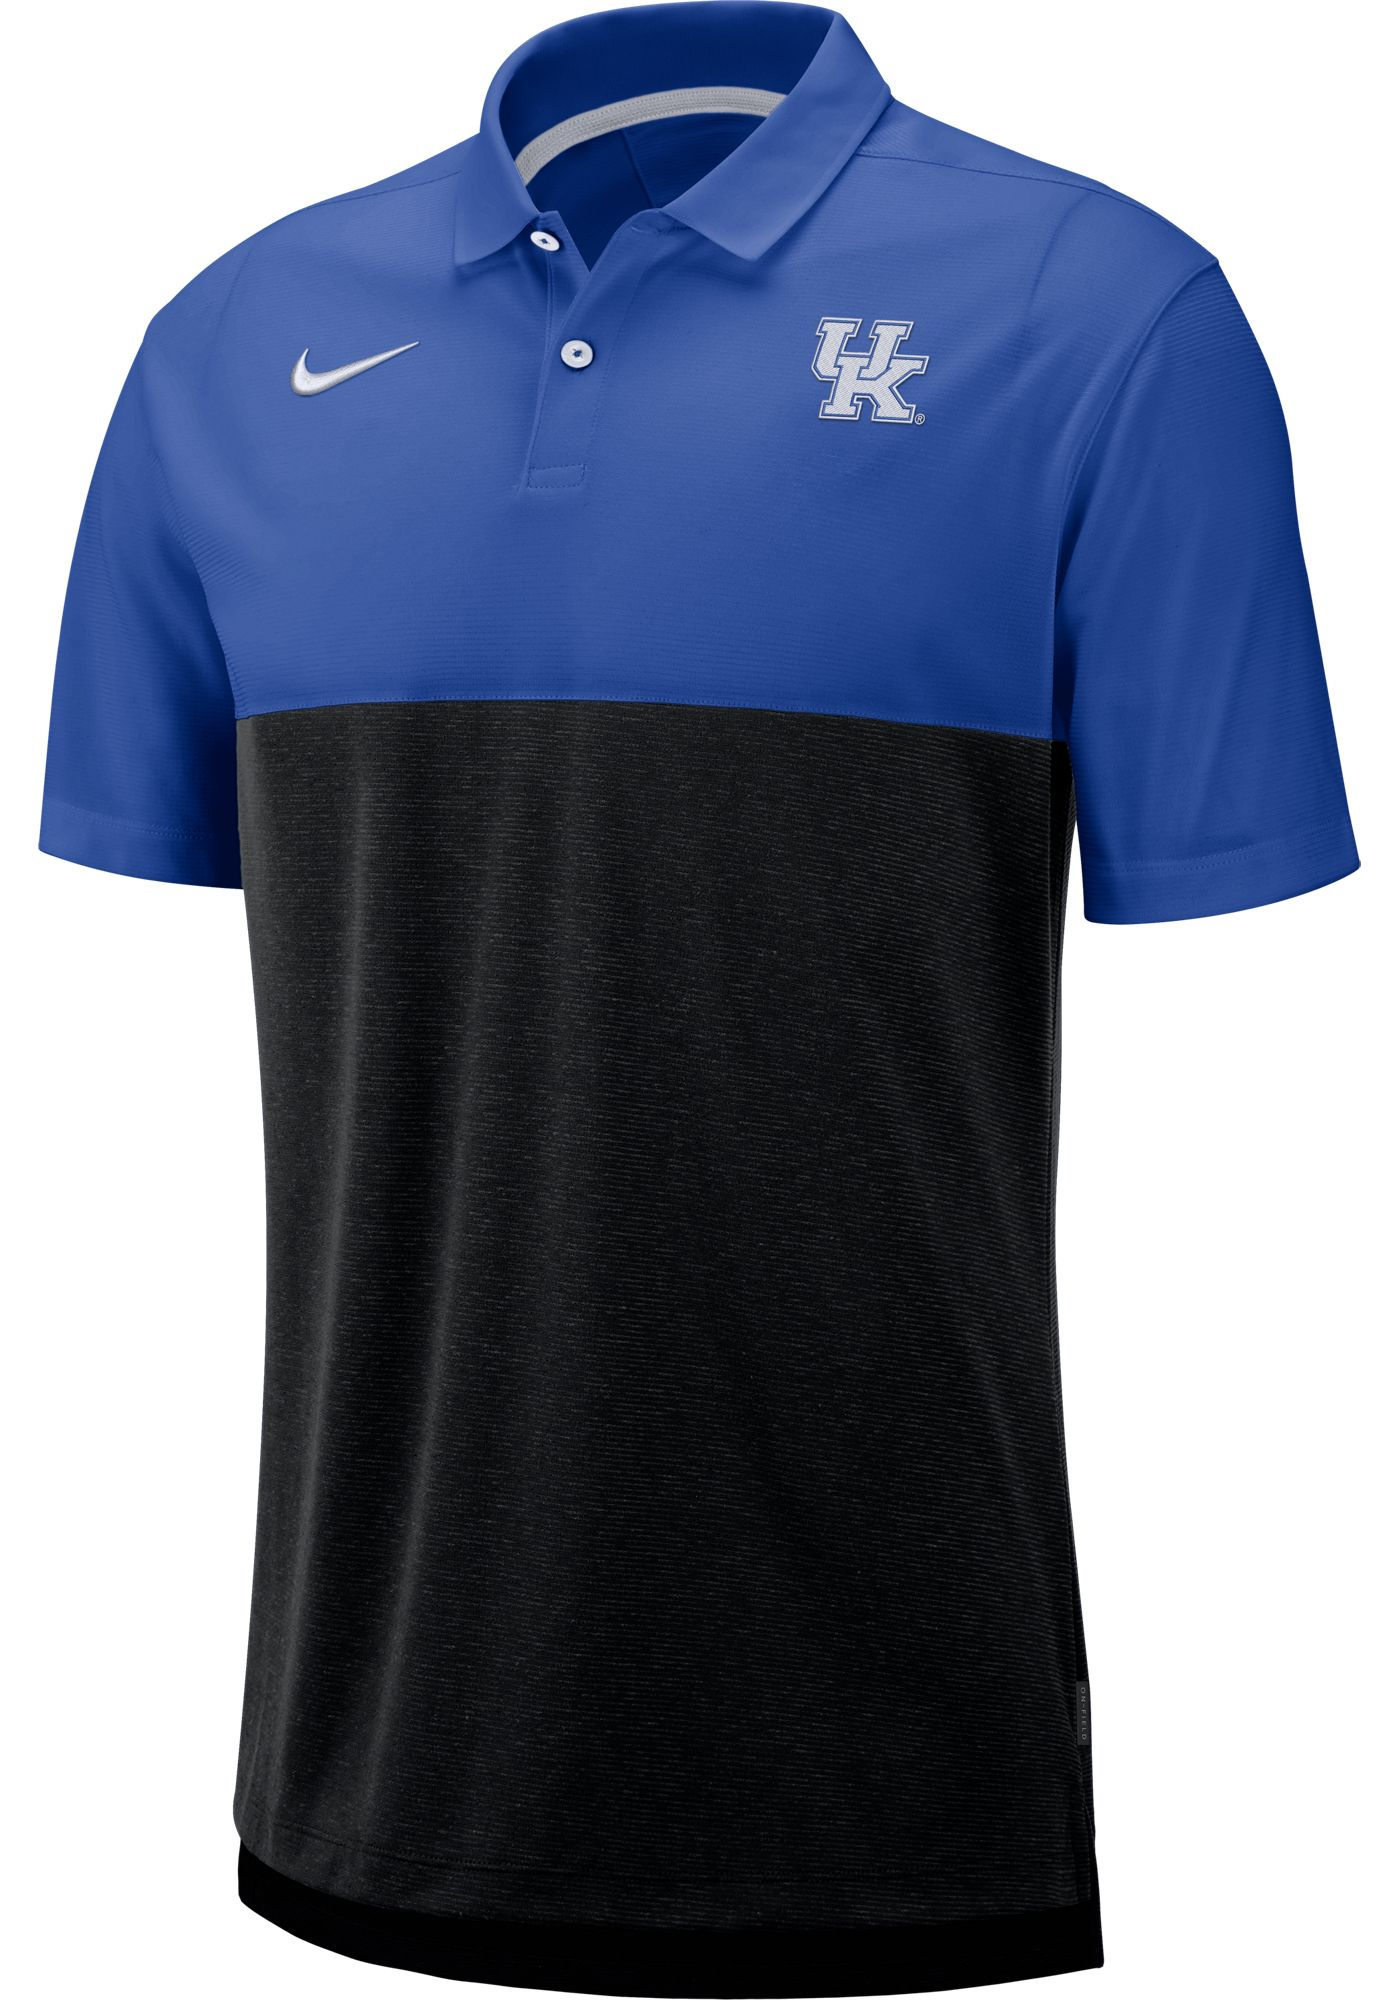 Nike Men's Kentucky Wildcats Blue/Black Dri-FIT Breathe Football Sideline Polo